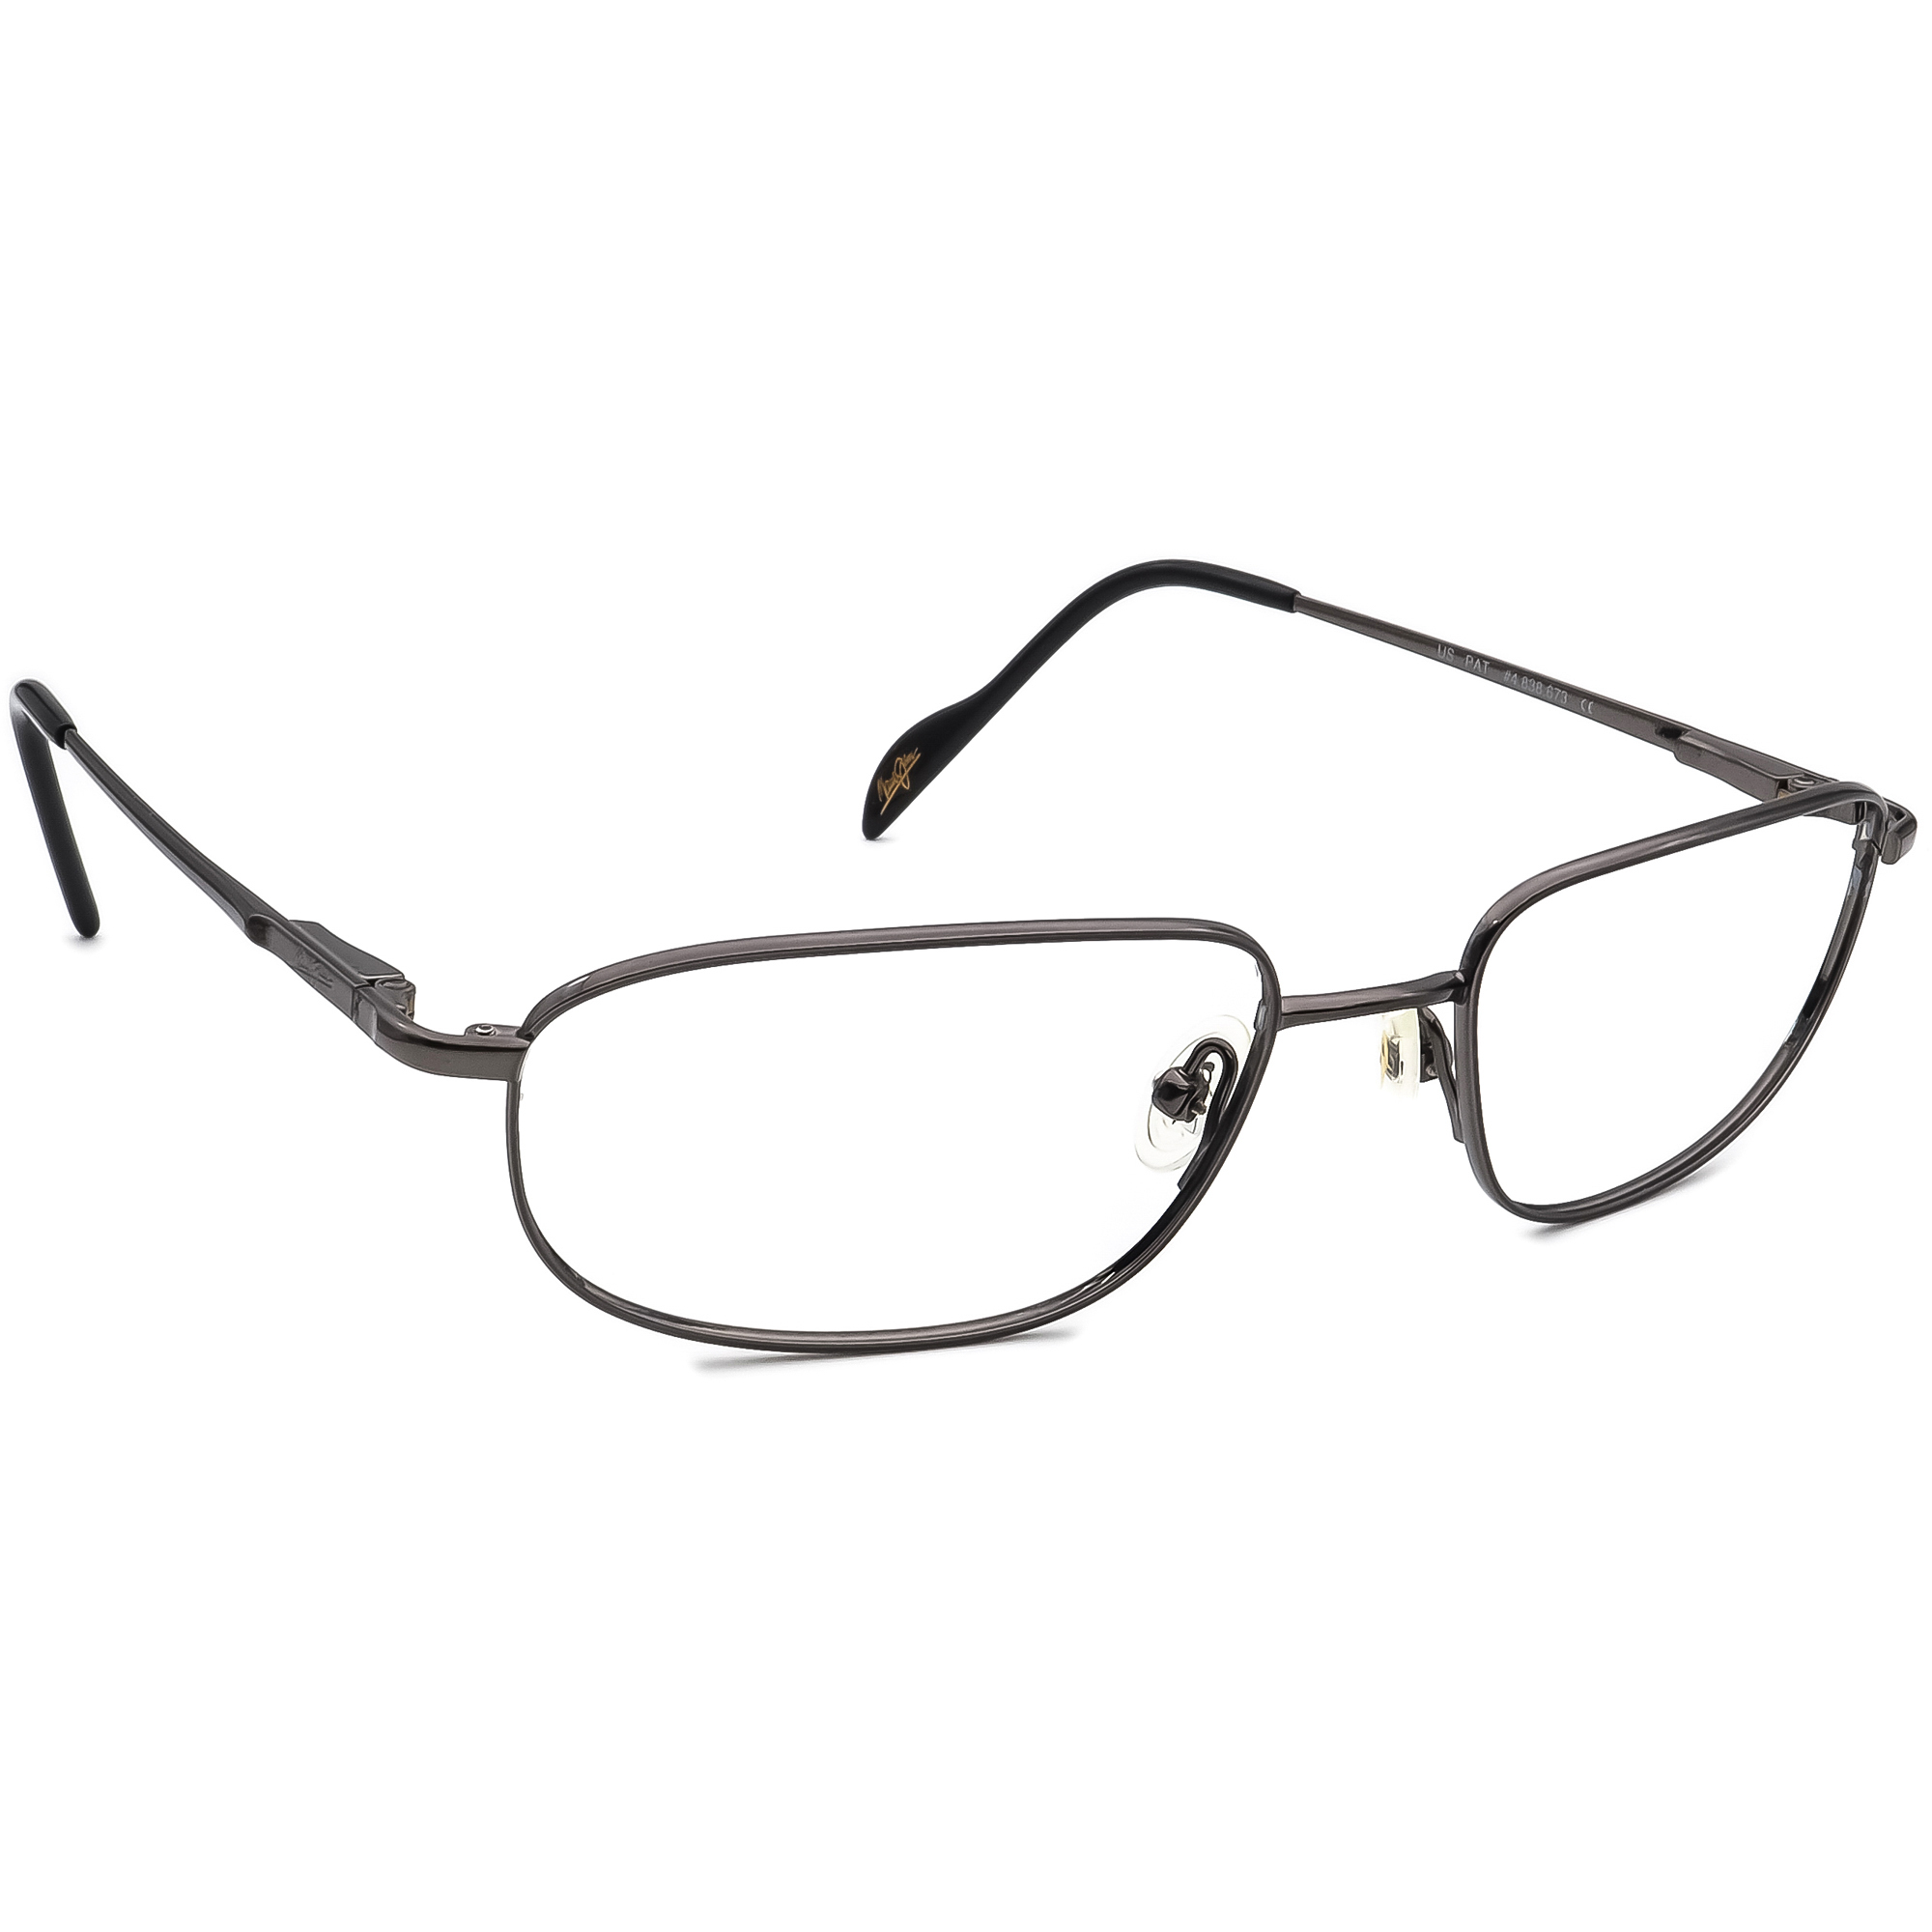 Maui Jim MJ-550-02 Sunglasses Frame Only